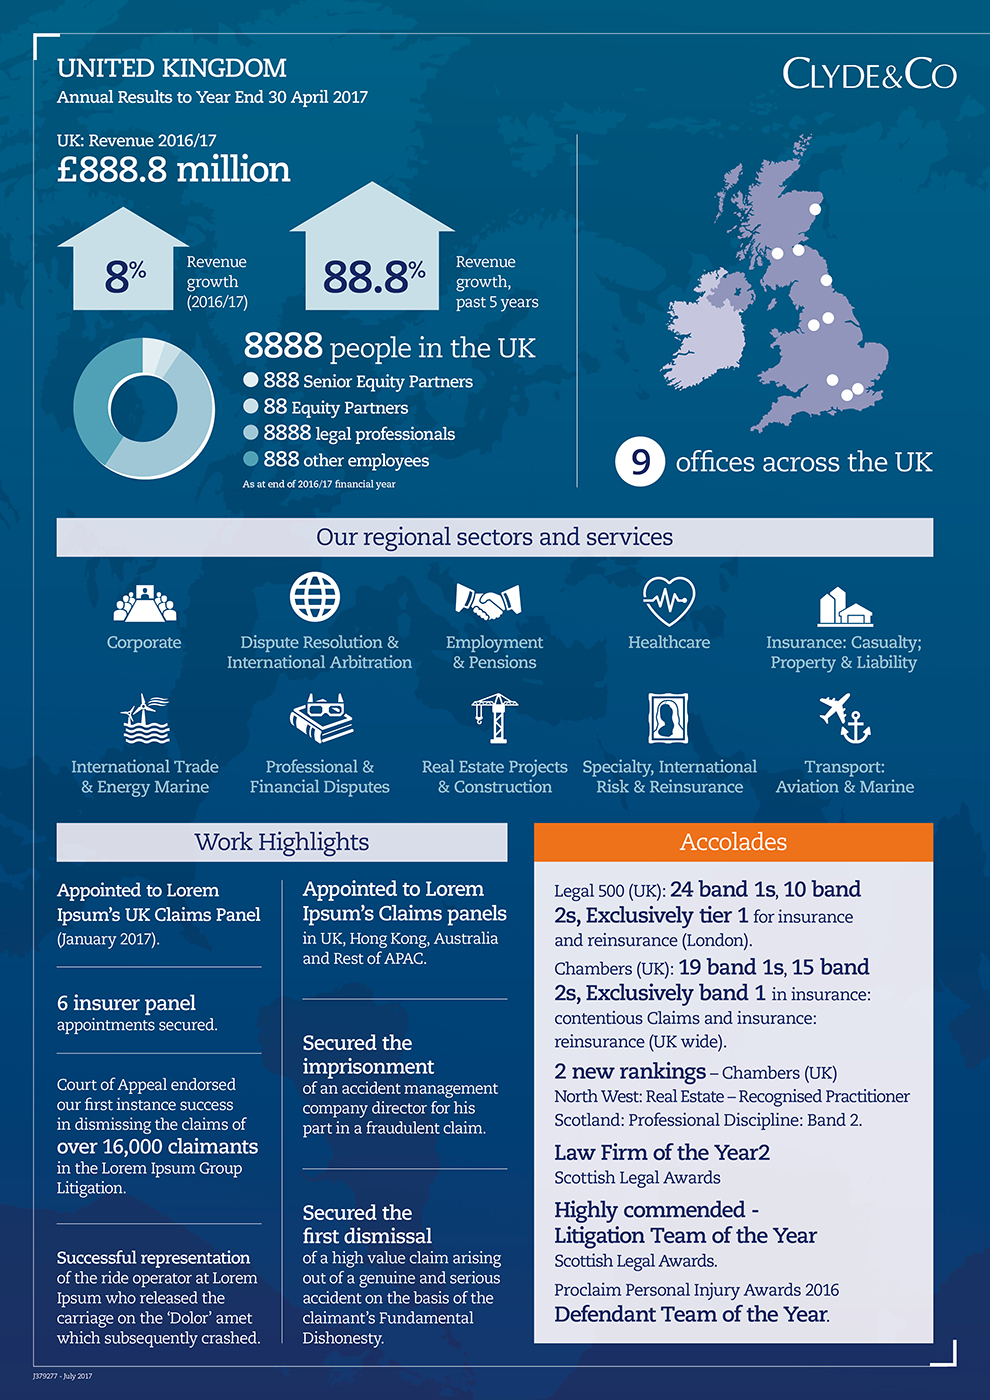 Clyde-Co_Annual-Results-2017_Infographic_02_Rob-Barrett